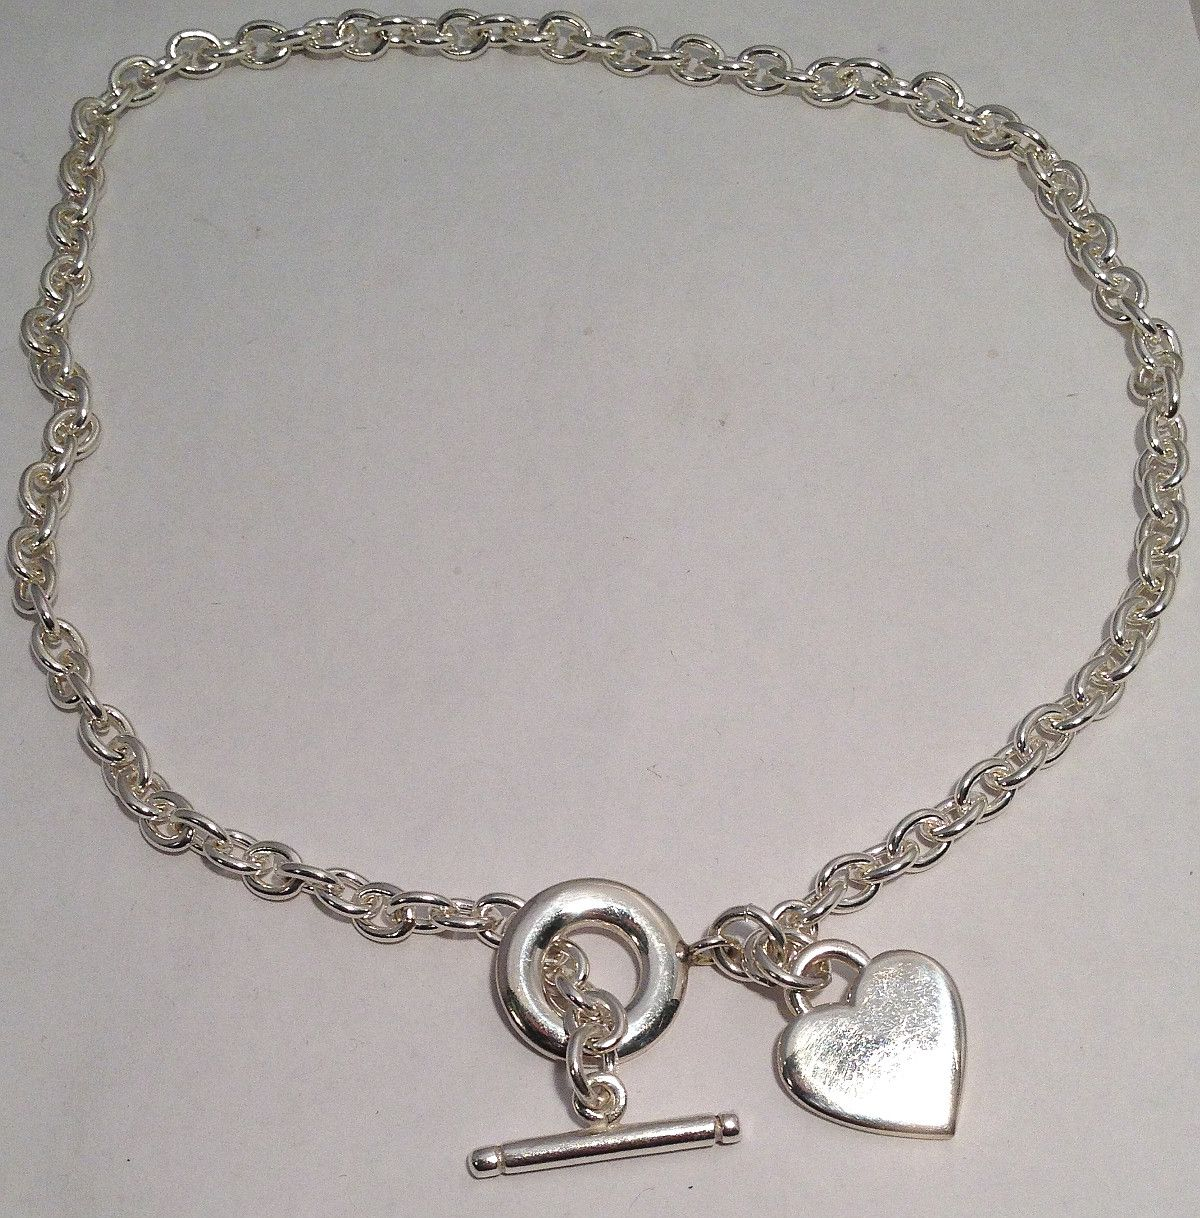 6ef3f3ccc Heart TAG Toggle Sterling Silver large Ladies Necklace. Iconic Heart  Pendant Tag T-Bar toggle clasp solid Belcher Chain.